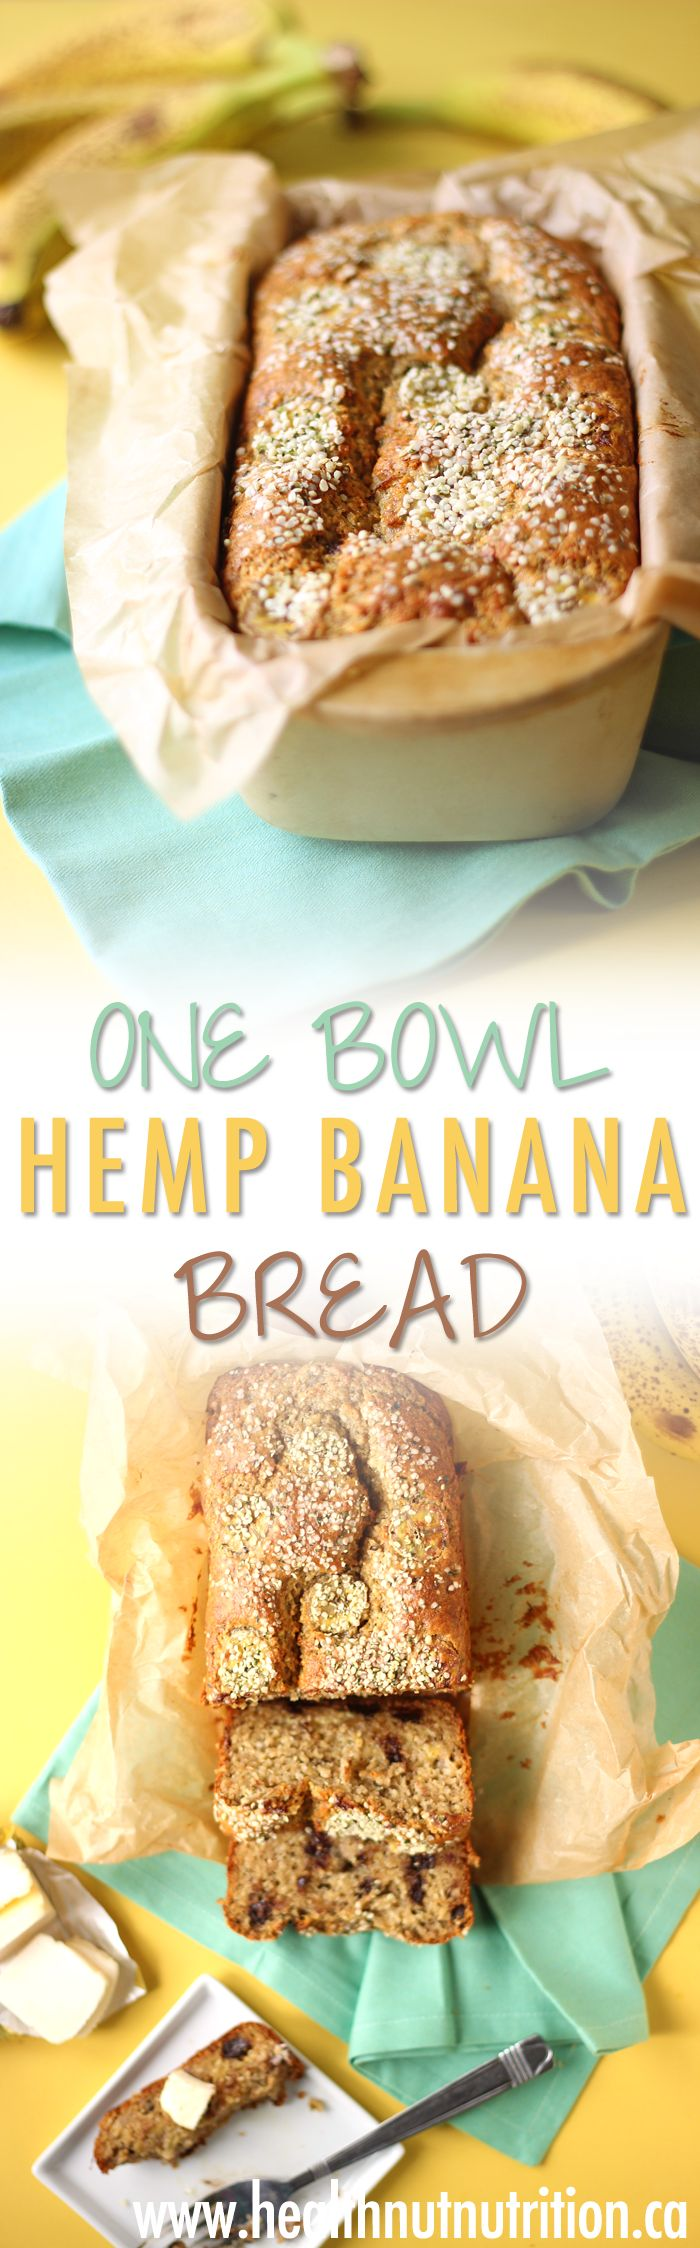 One Bowl Hemp Banana Bread | 2 WAYS - Healthnut Nutrition